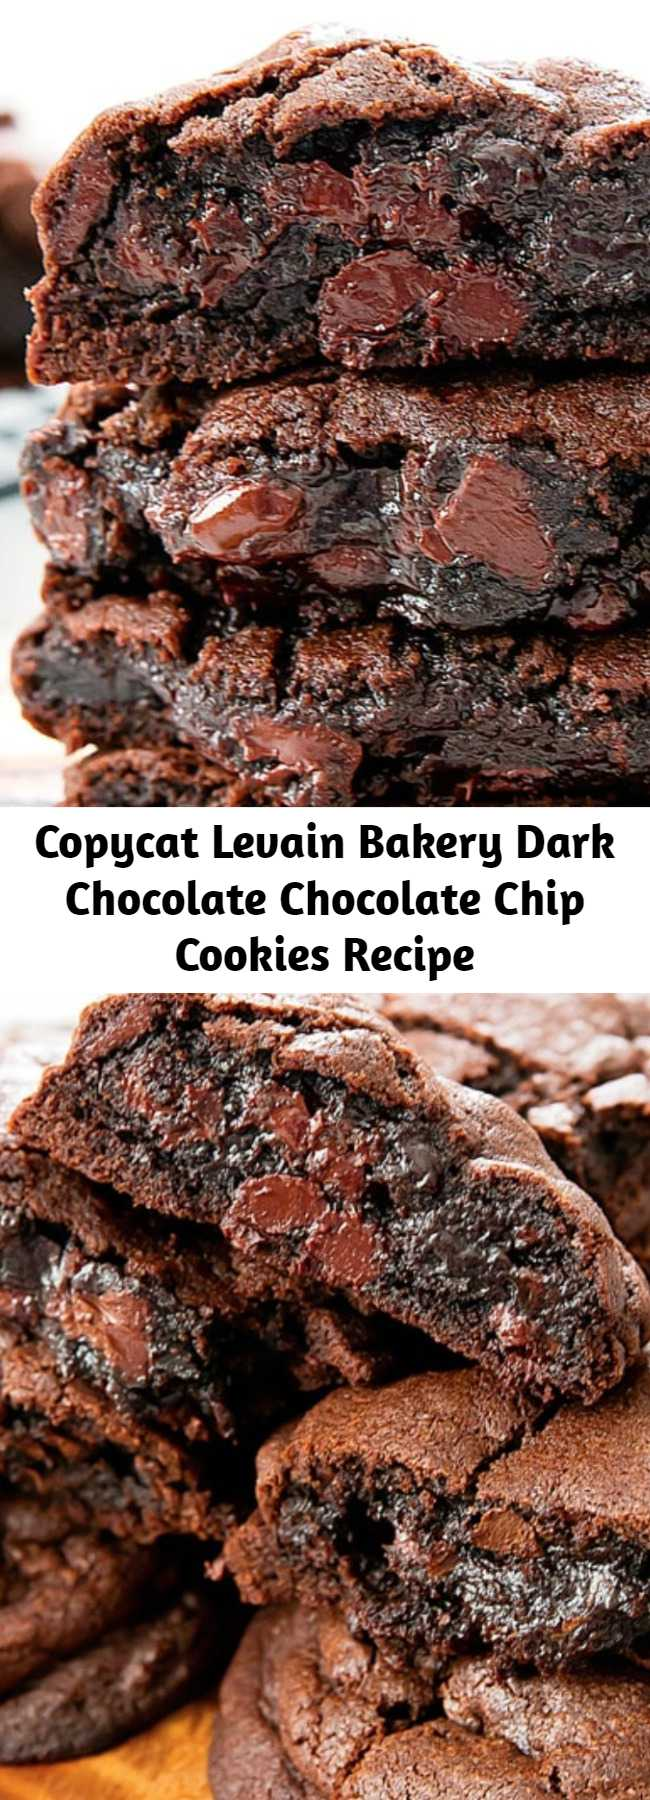 Copycat Levain Bakery Dark Chocolate Chocolate Chip Cookies Recipe - These decadent double chocolate chip cookies are thick, soft, and rich. They taste very close to the dark chocolate chocolate chip cookies from Levain Bakery in New York City.